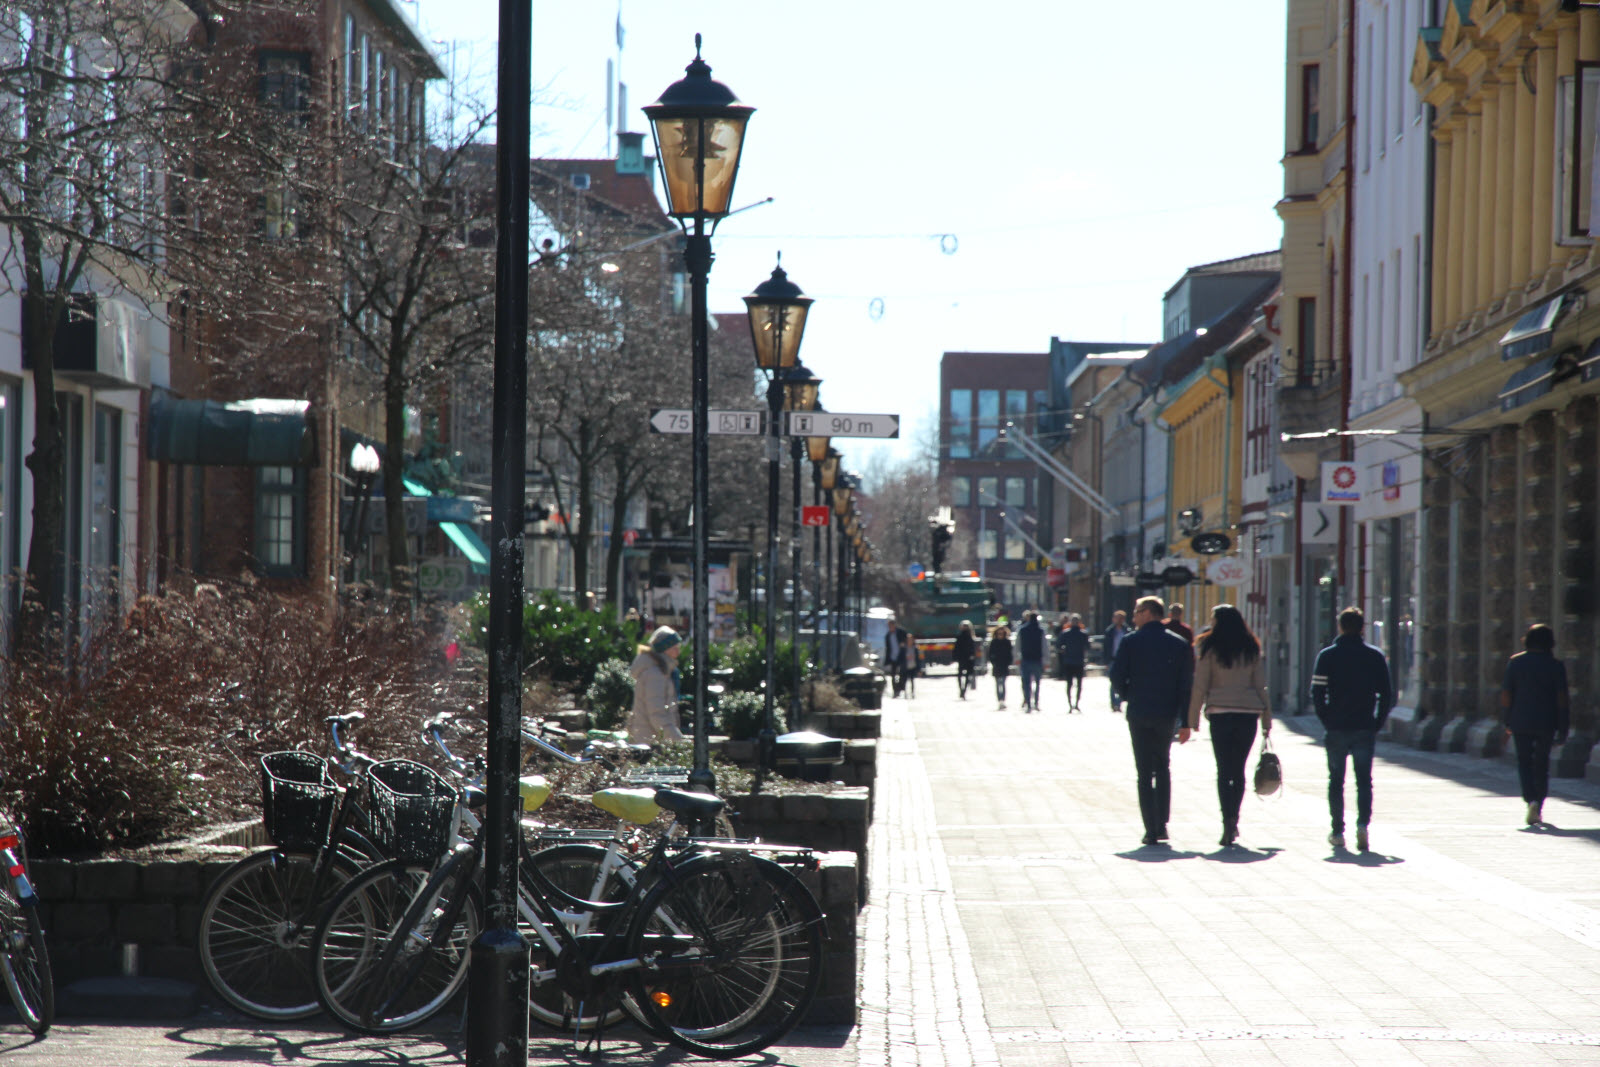 Halmstad city center